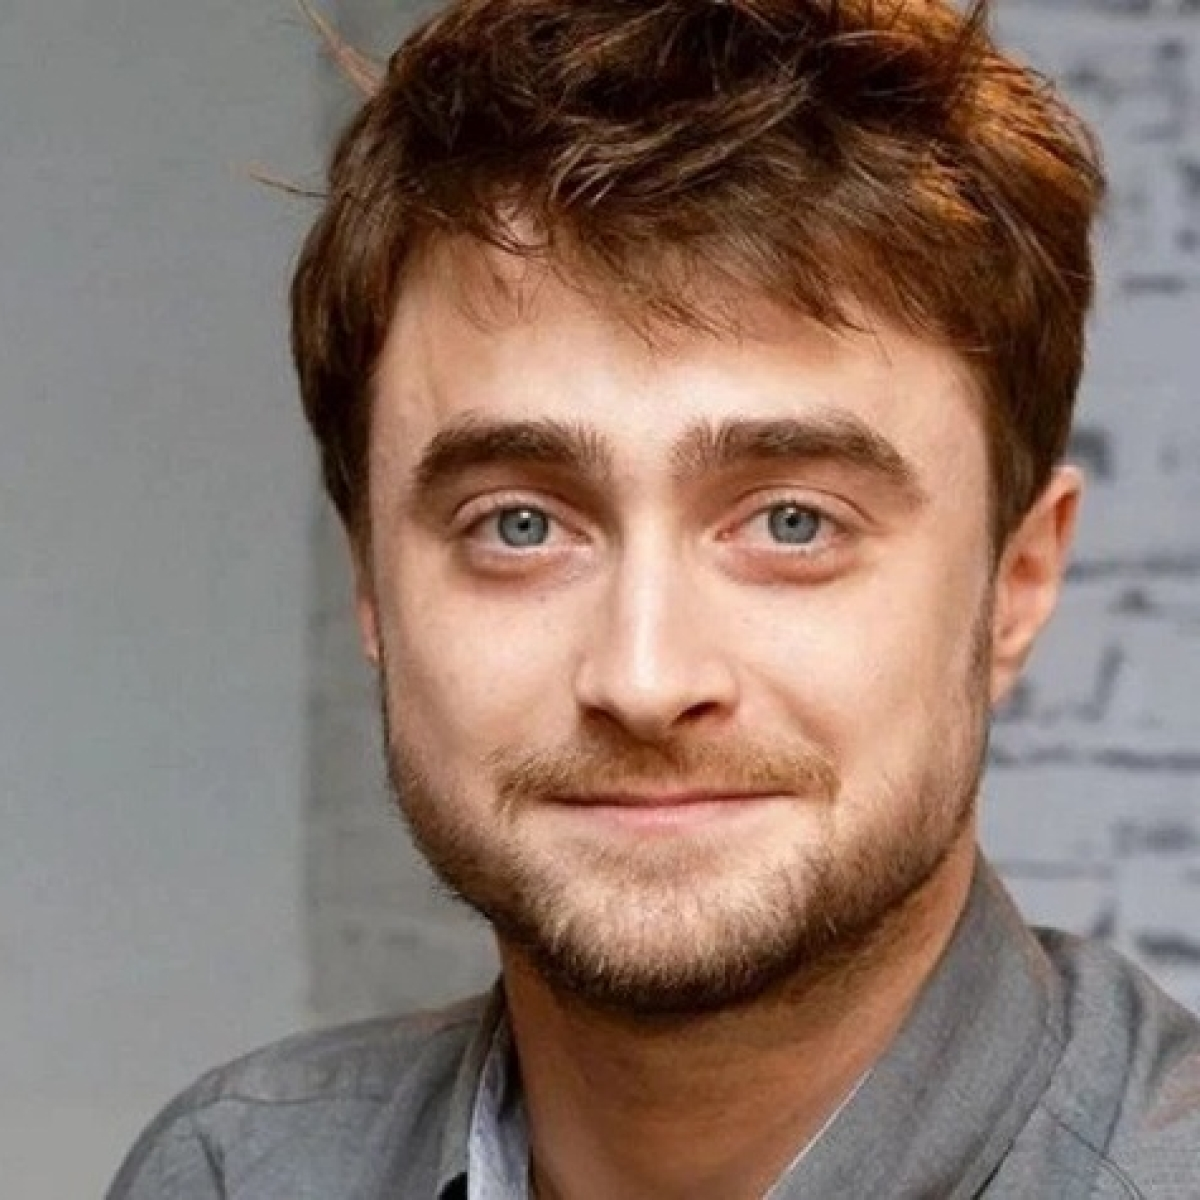 Harry Potter At Home: Daniel Radcliffe reads Chapter 1 for fans